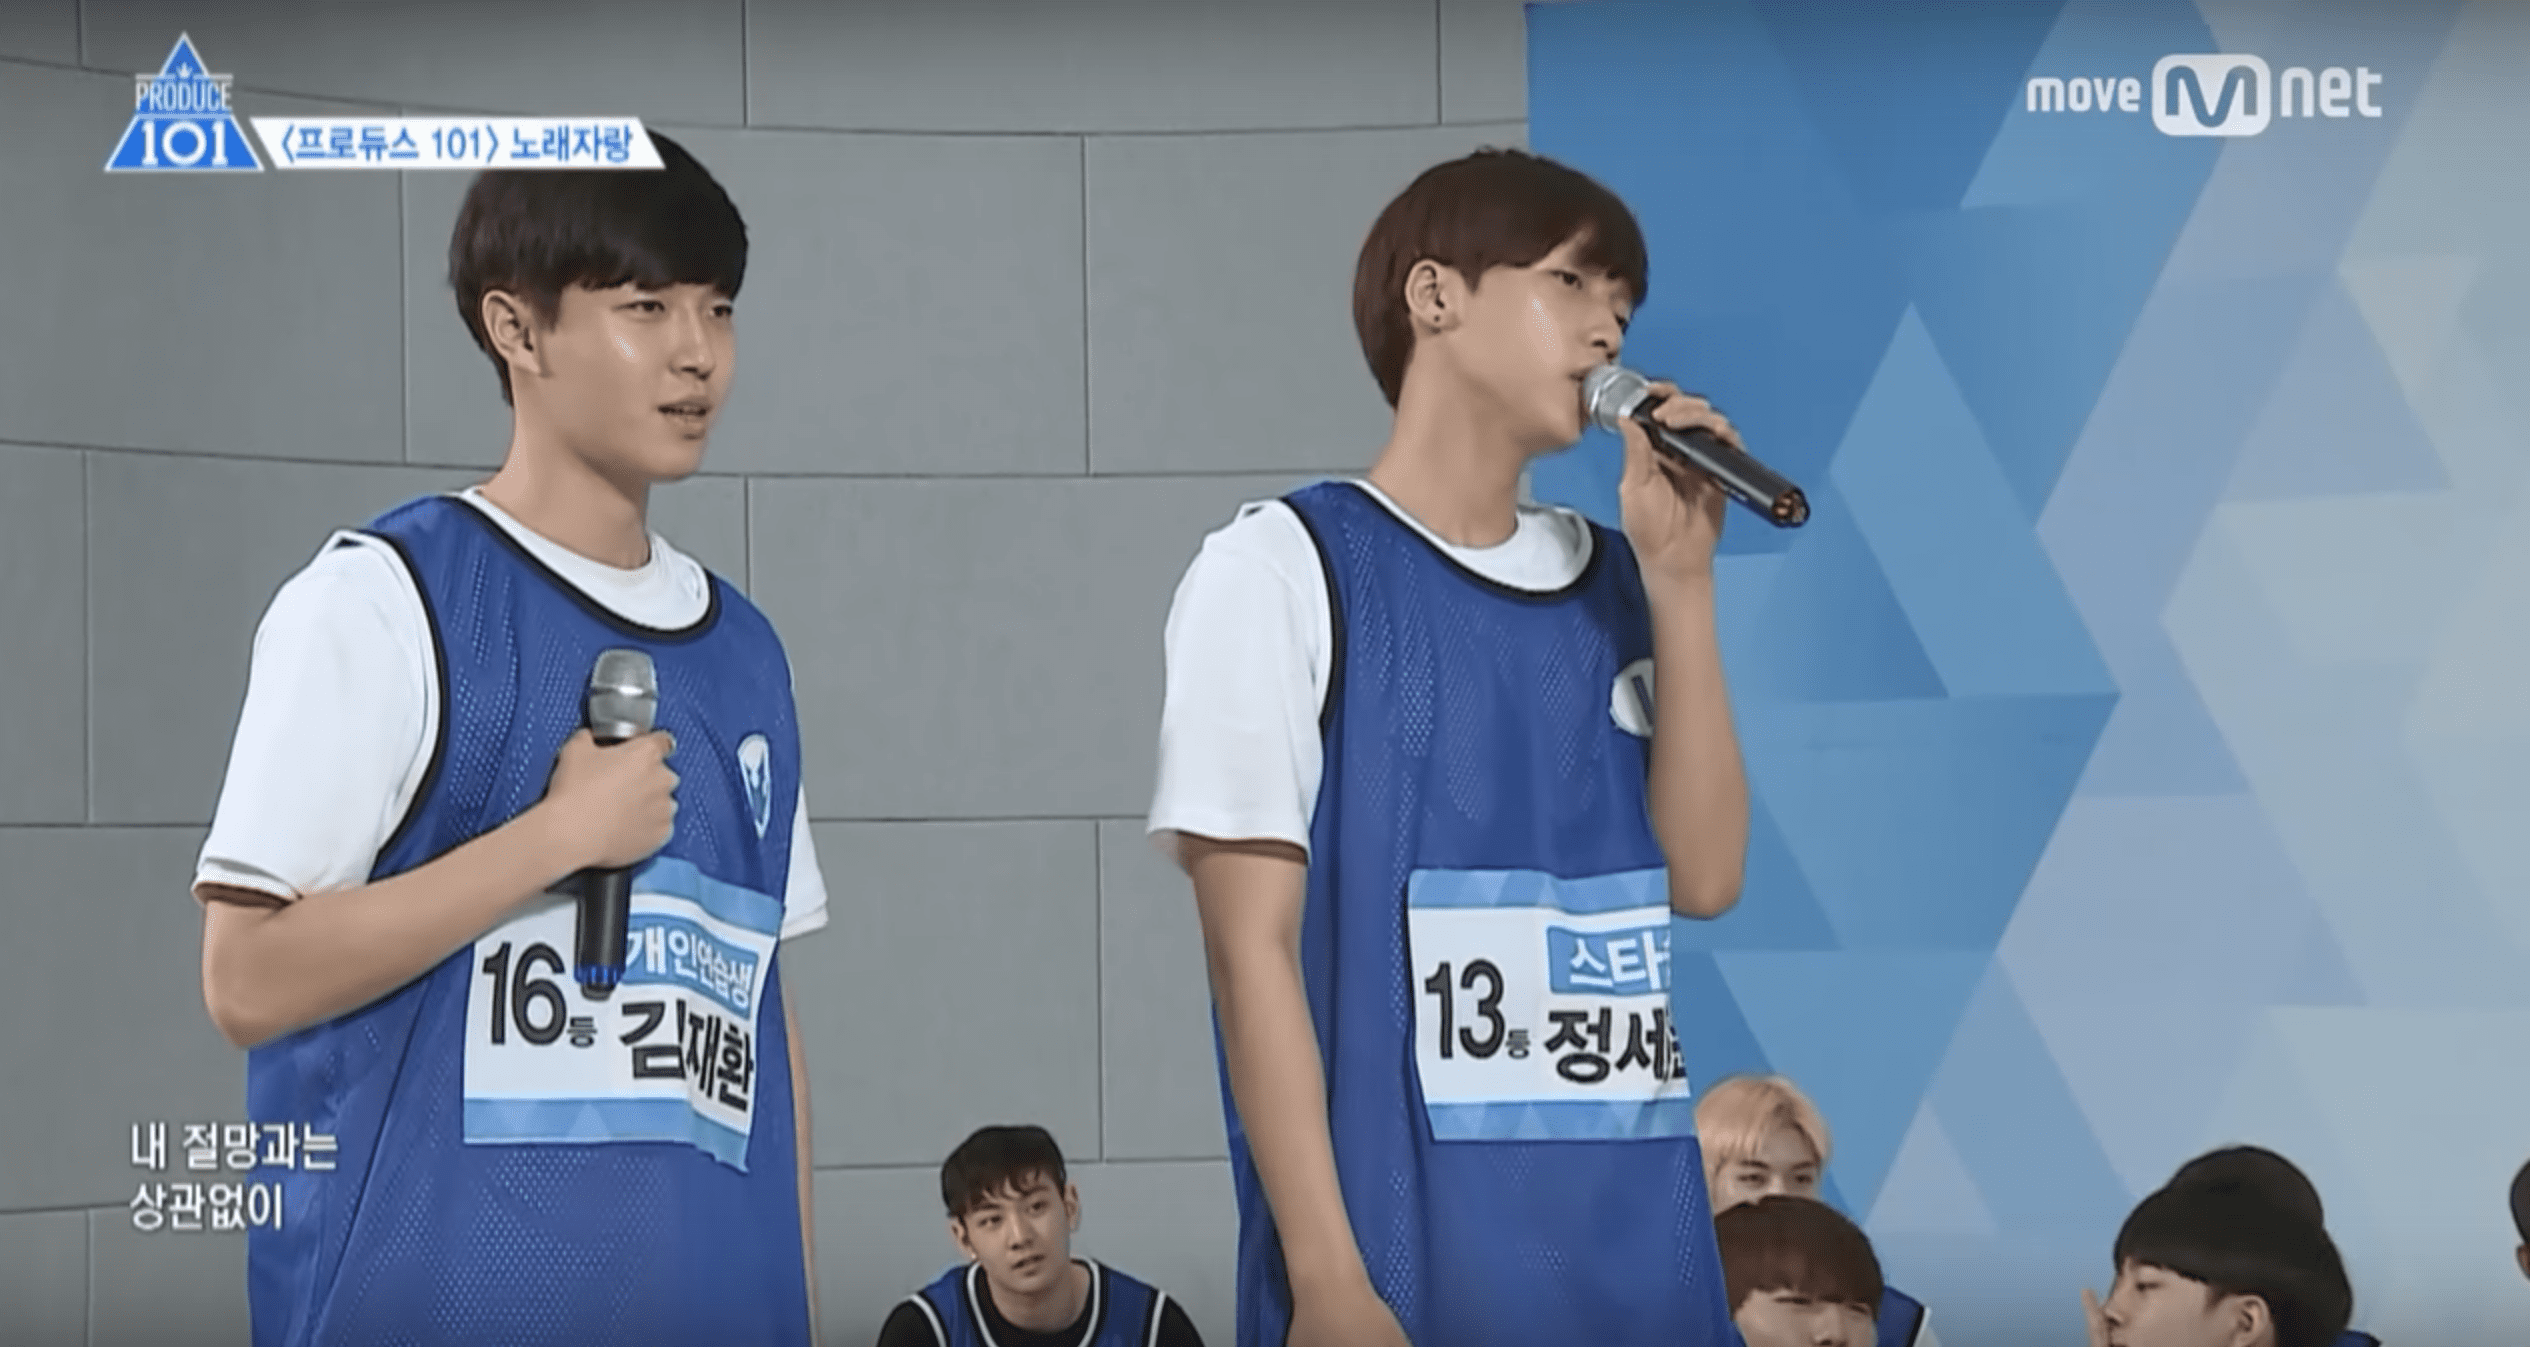 Watch: Produce 101 Season 2 Trainees Make Each Other Laugh And Cry During Informal Karaoke Session